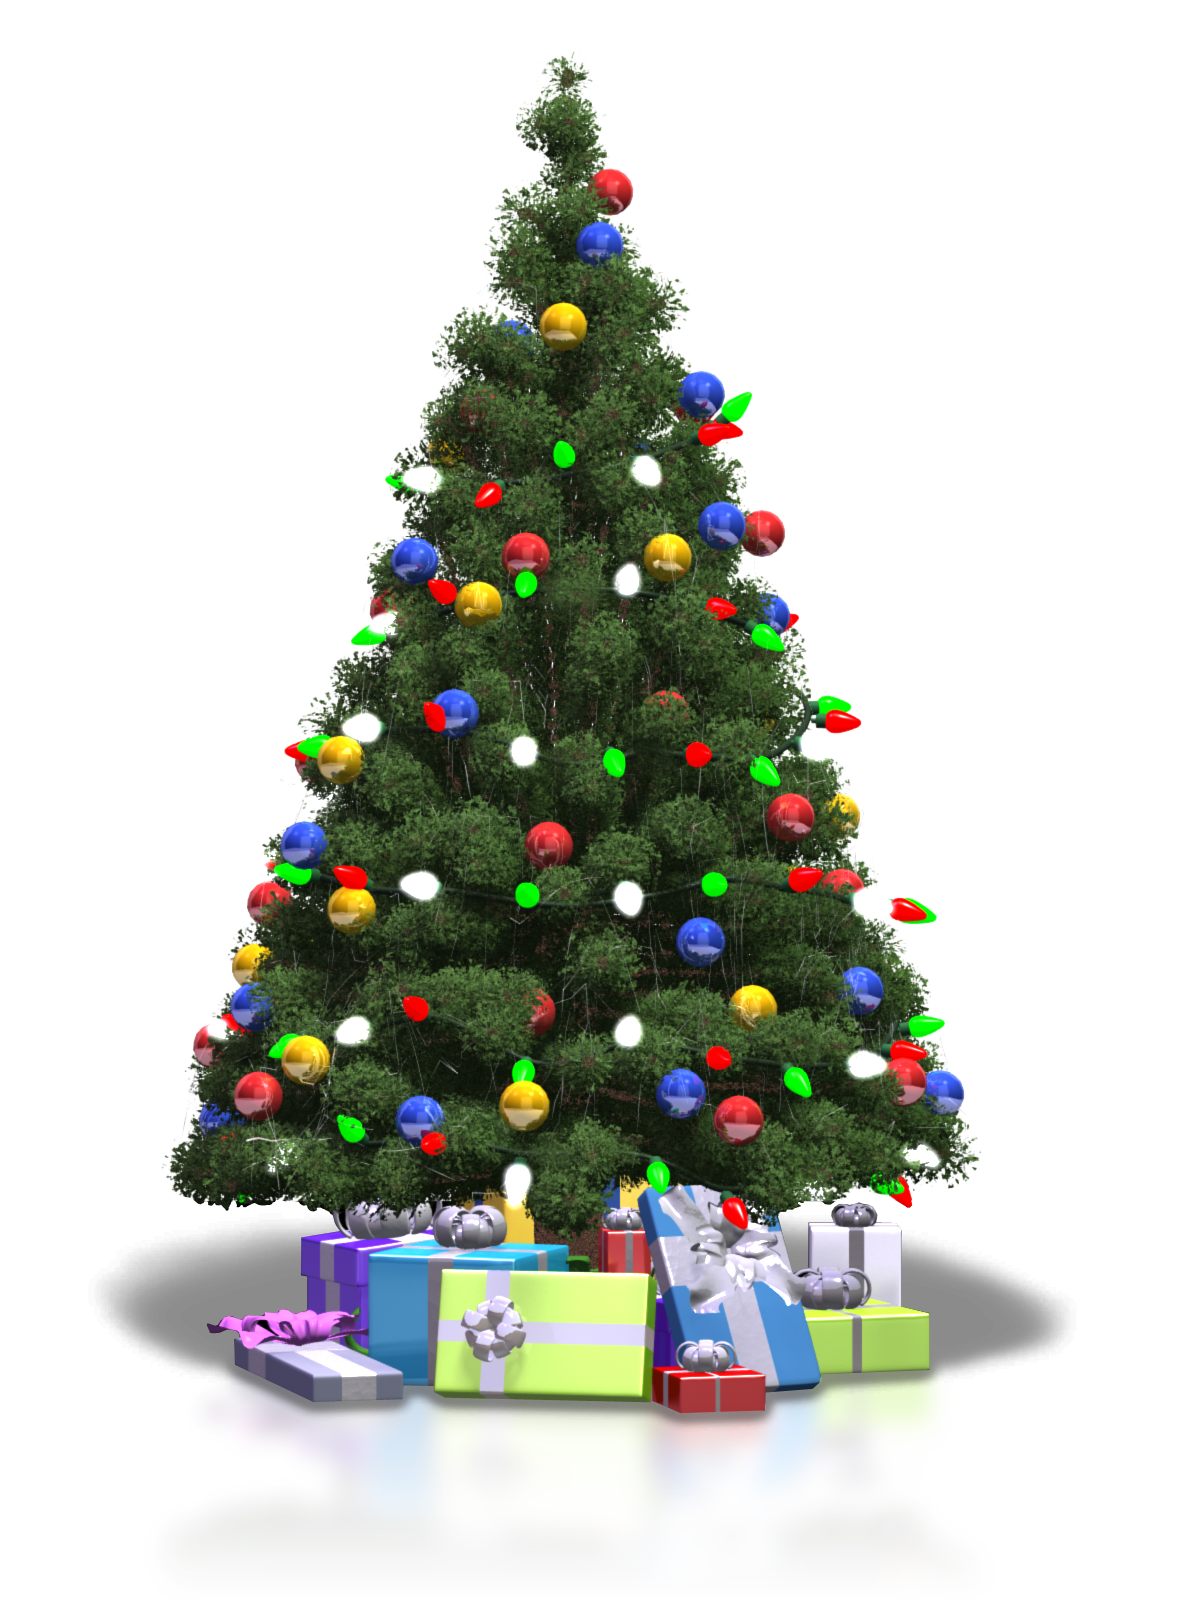 Download Christmas Tree Transparent Background Hq Png Image Freepngimg